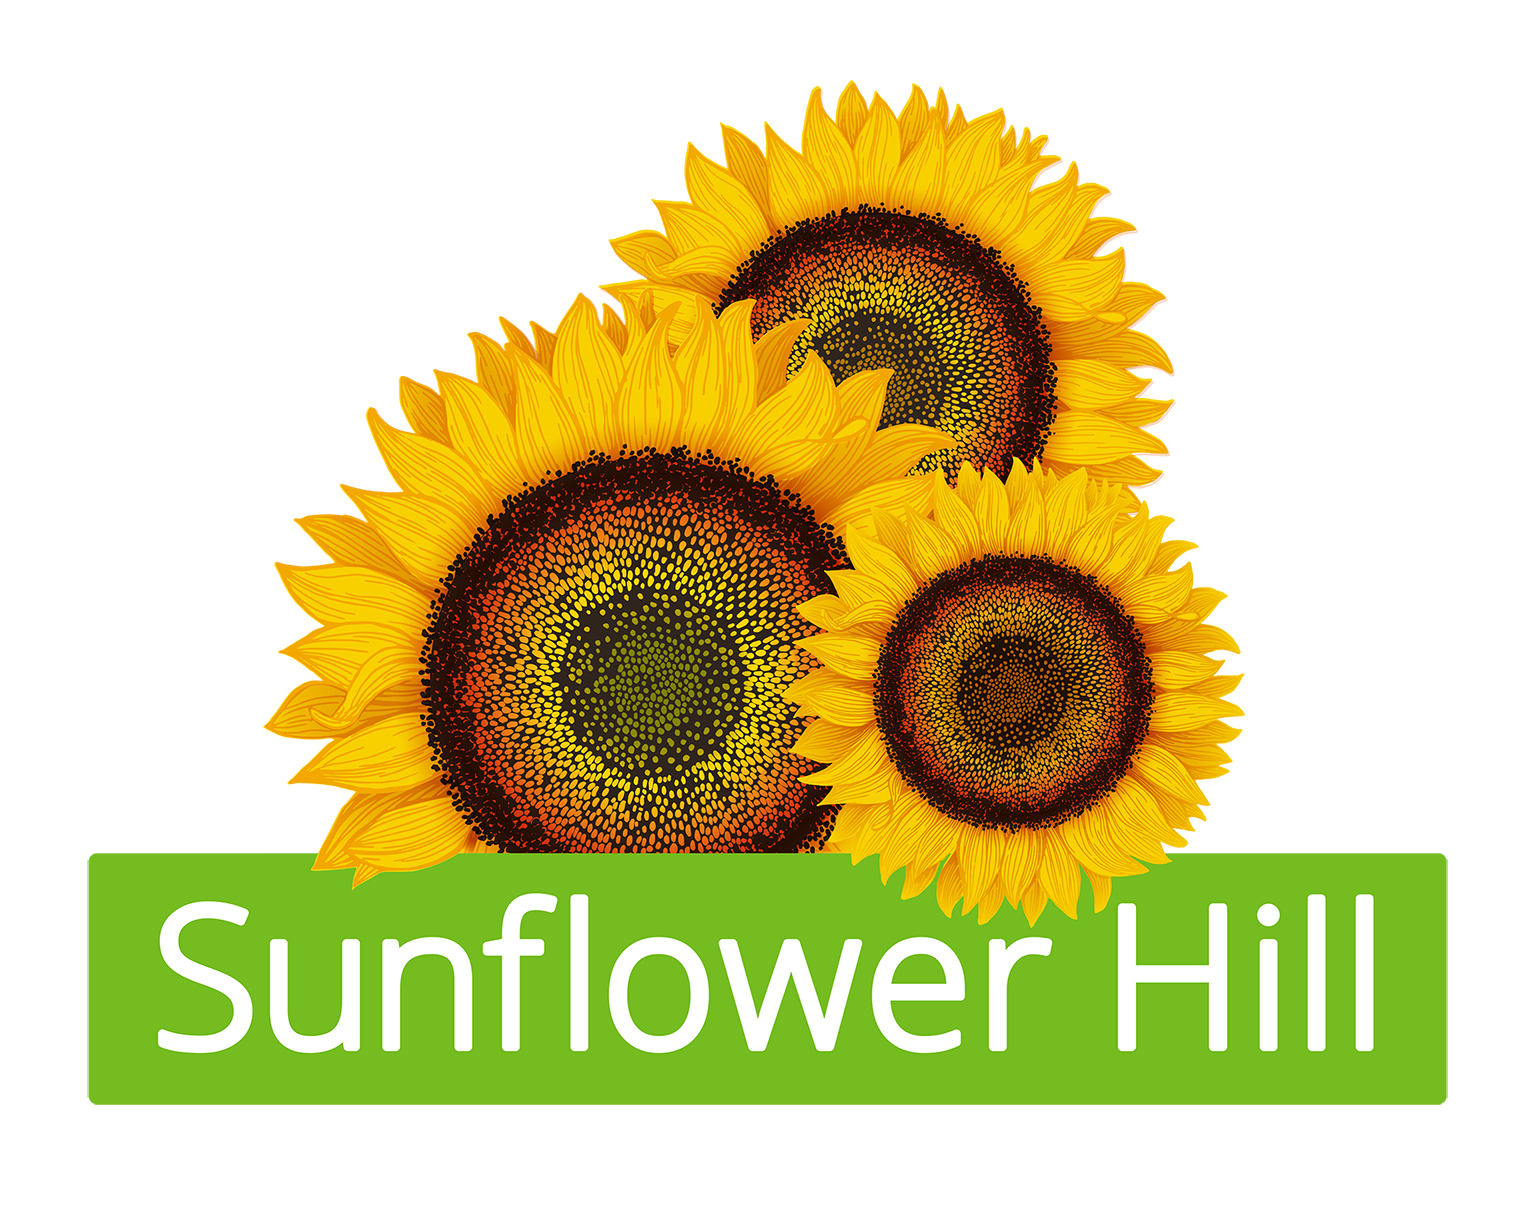 Make A Difference For Pleasanton Festival Exhibitor logo - Sunflower HIll